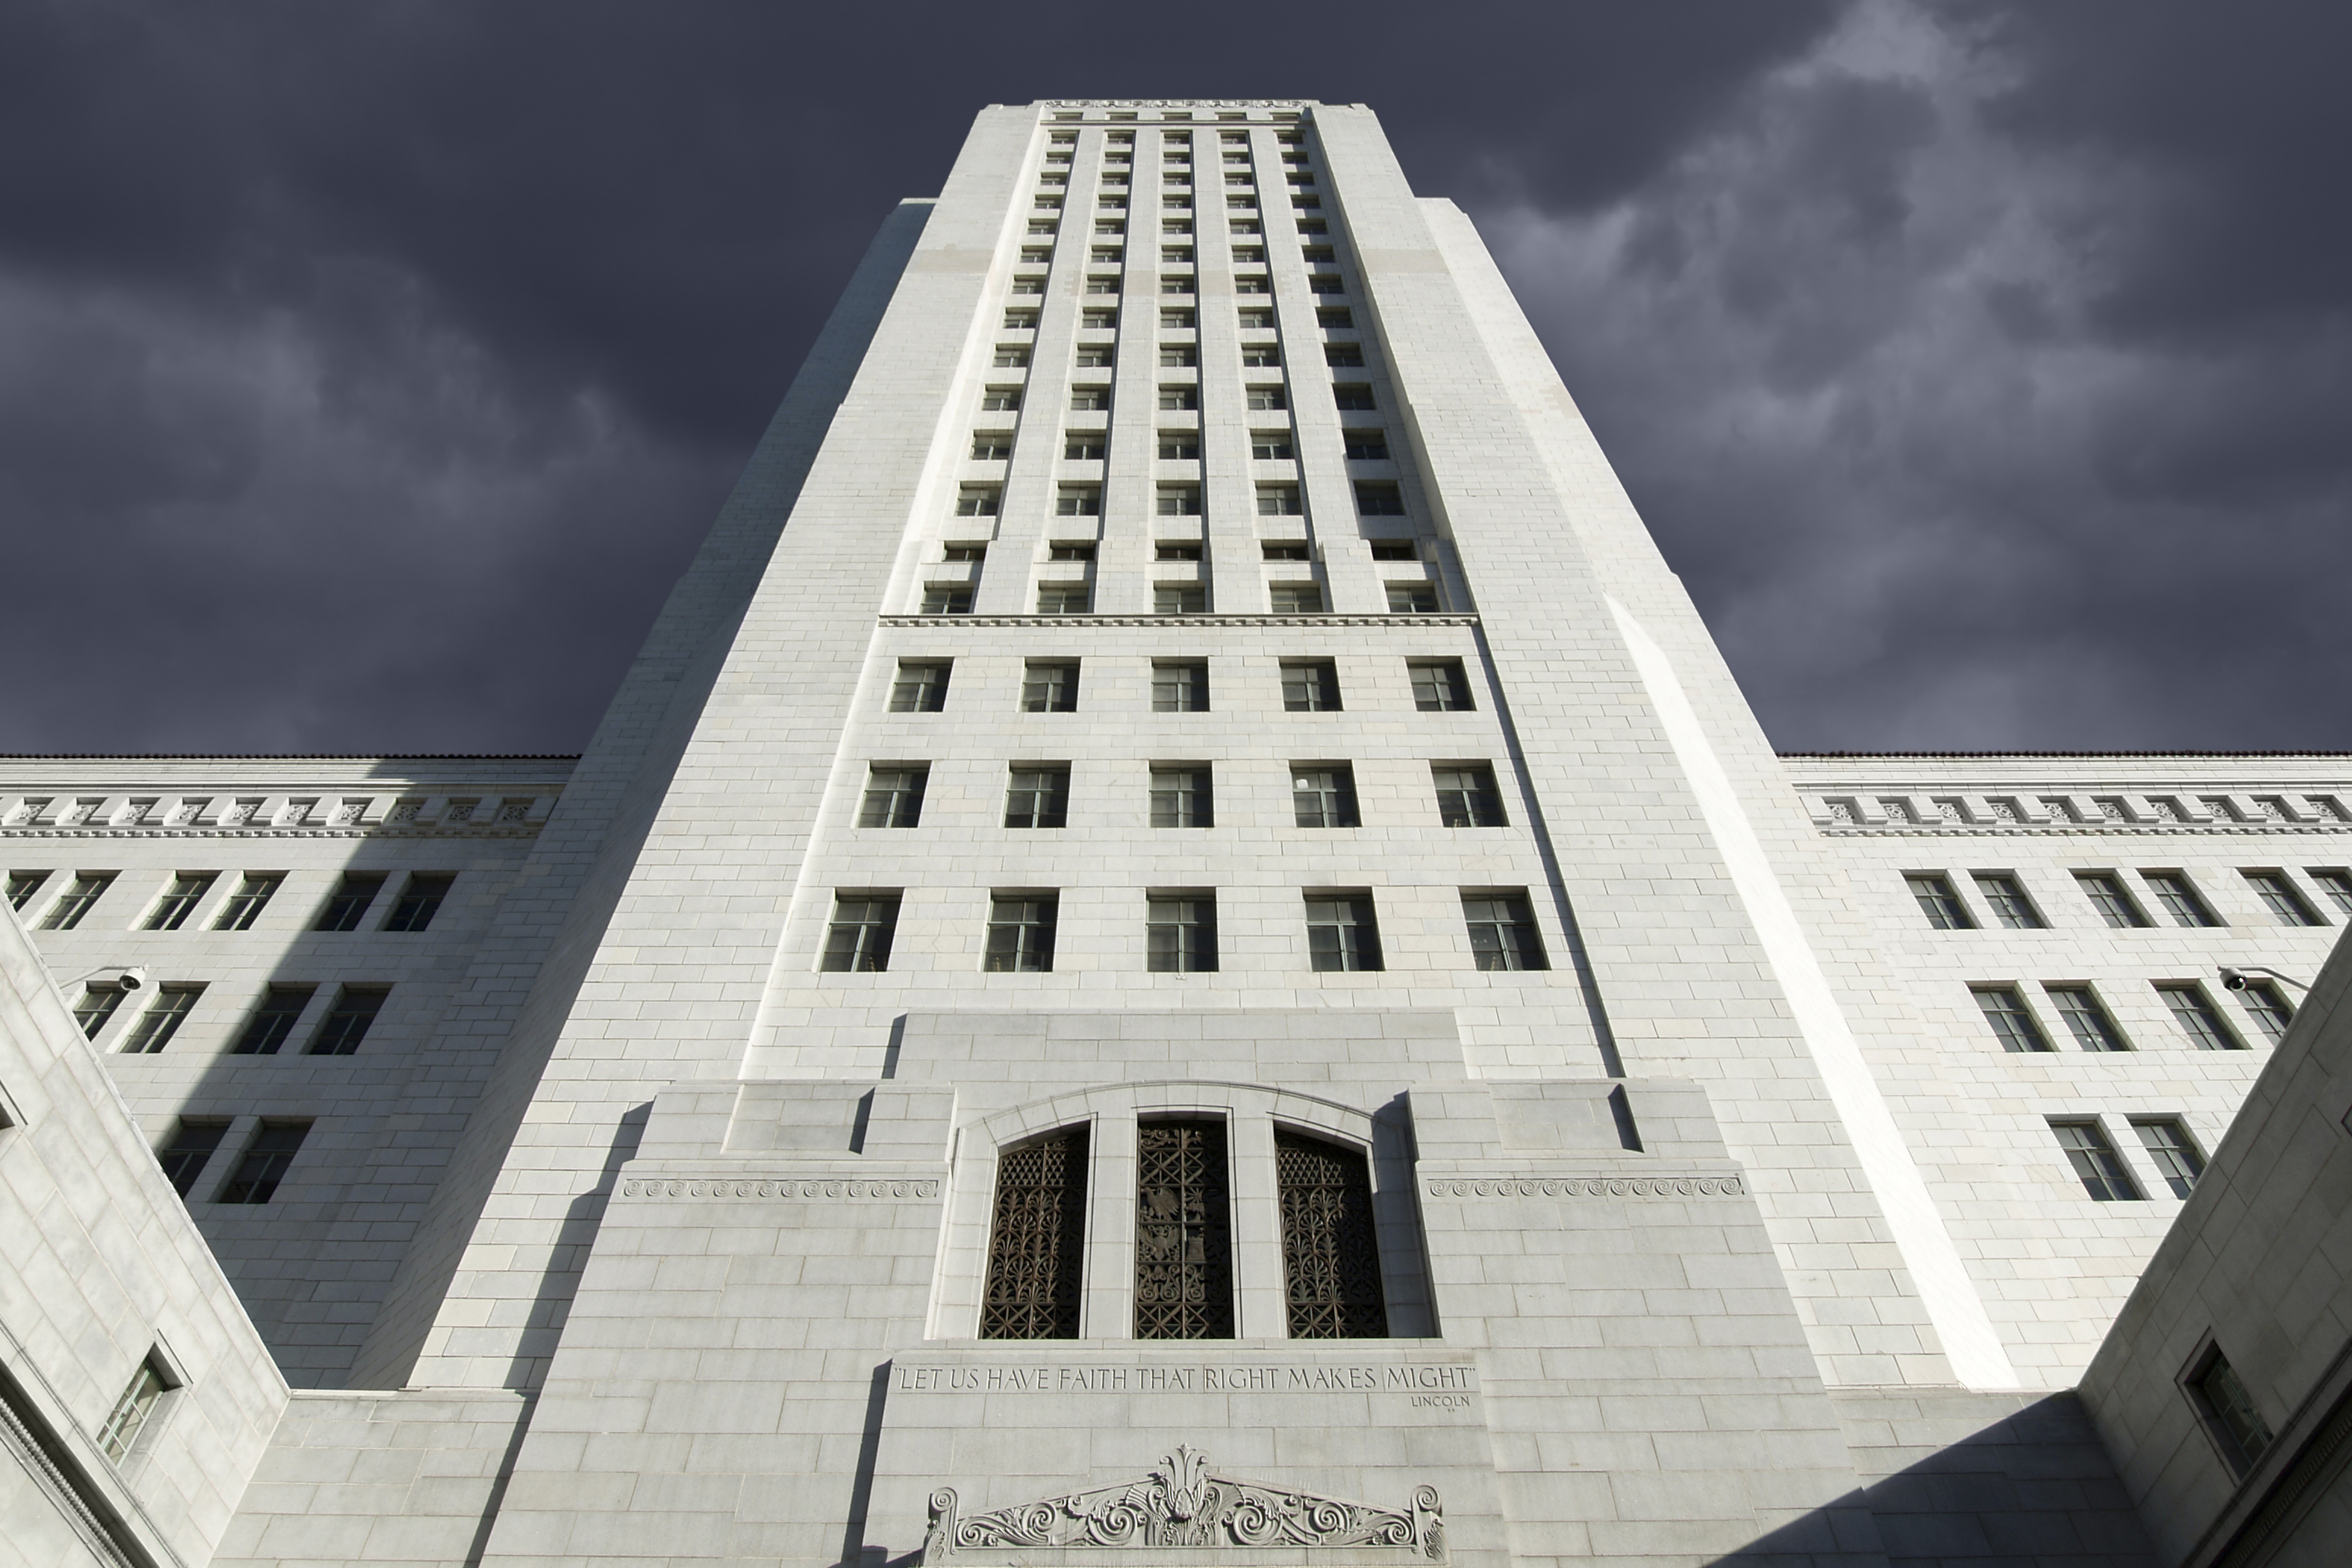 A worms-eye view of a looming white concrete building, L.A. City Hall, many stories high. It feels ominous and foreboding, towering above the viewer's vantage point.